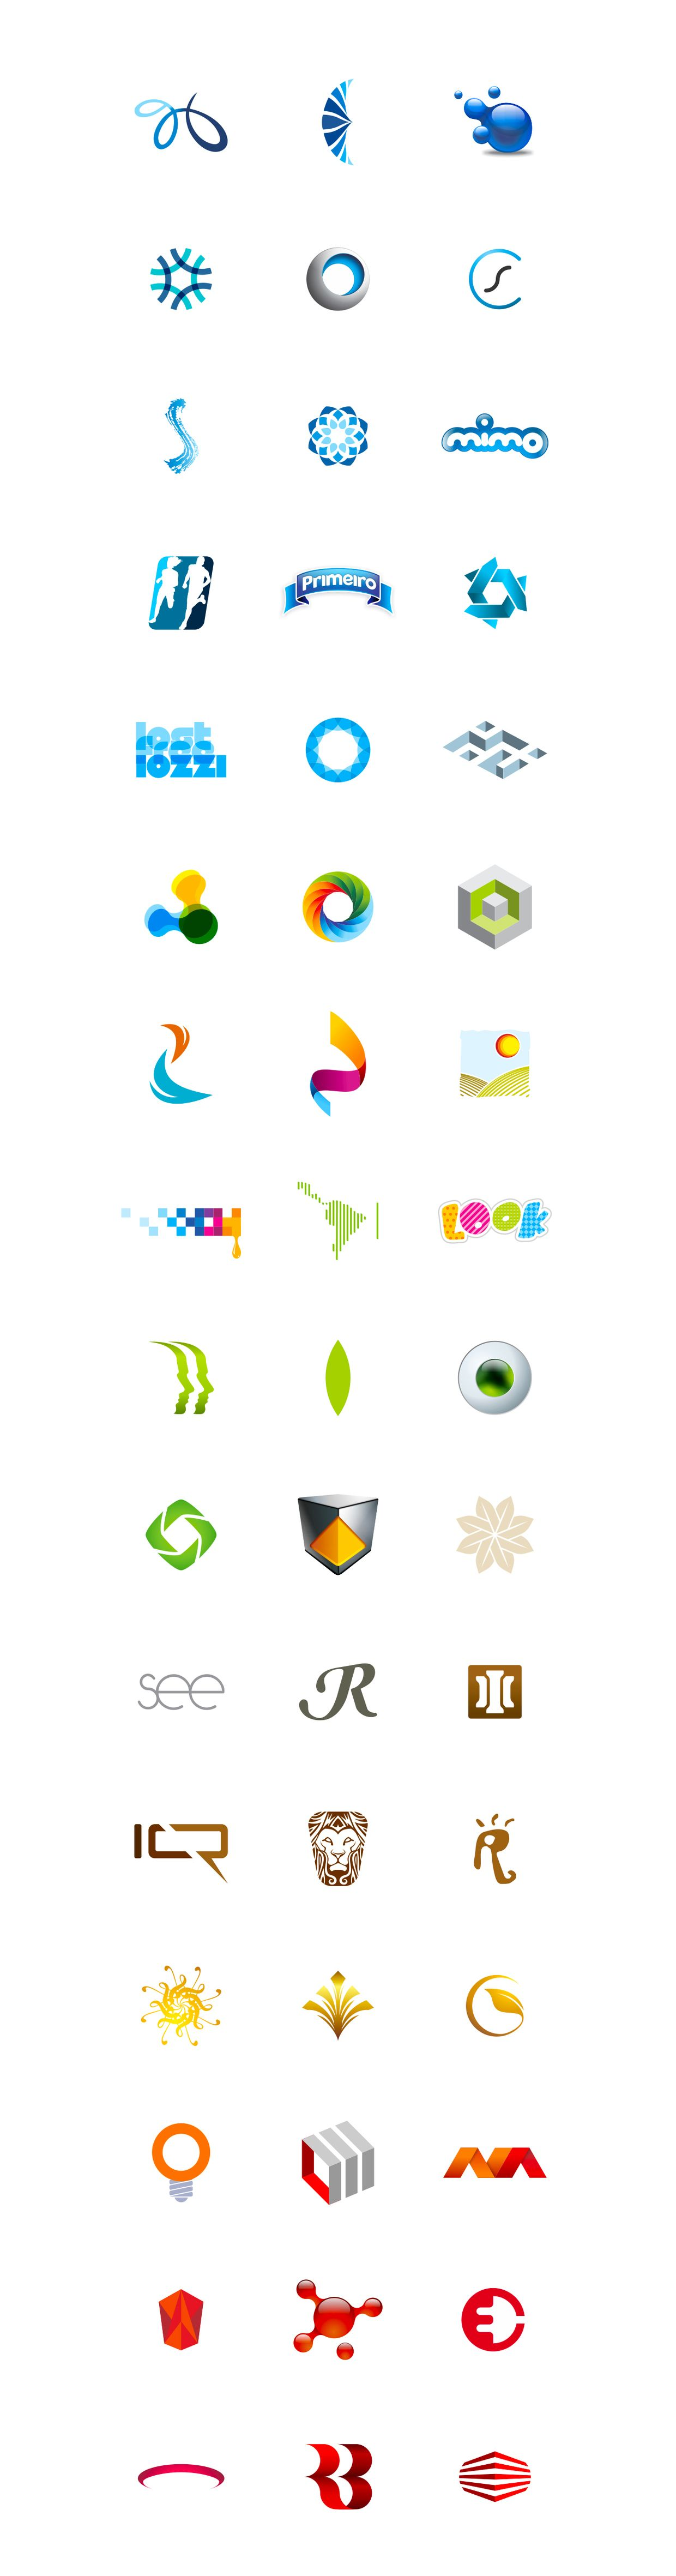 Logo Collection 2011 · 2012 on Behance